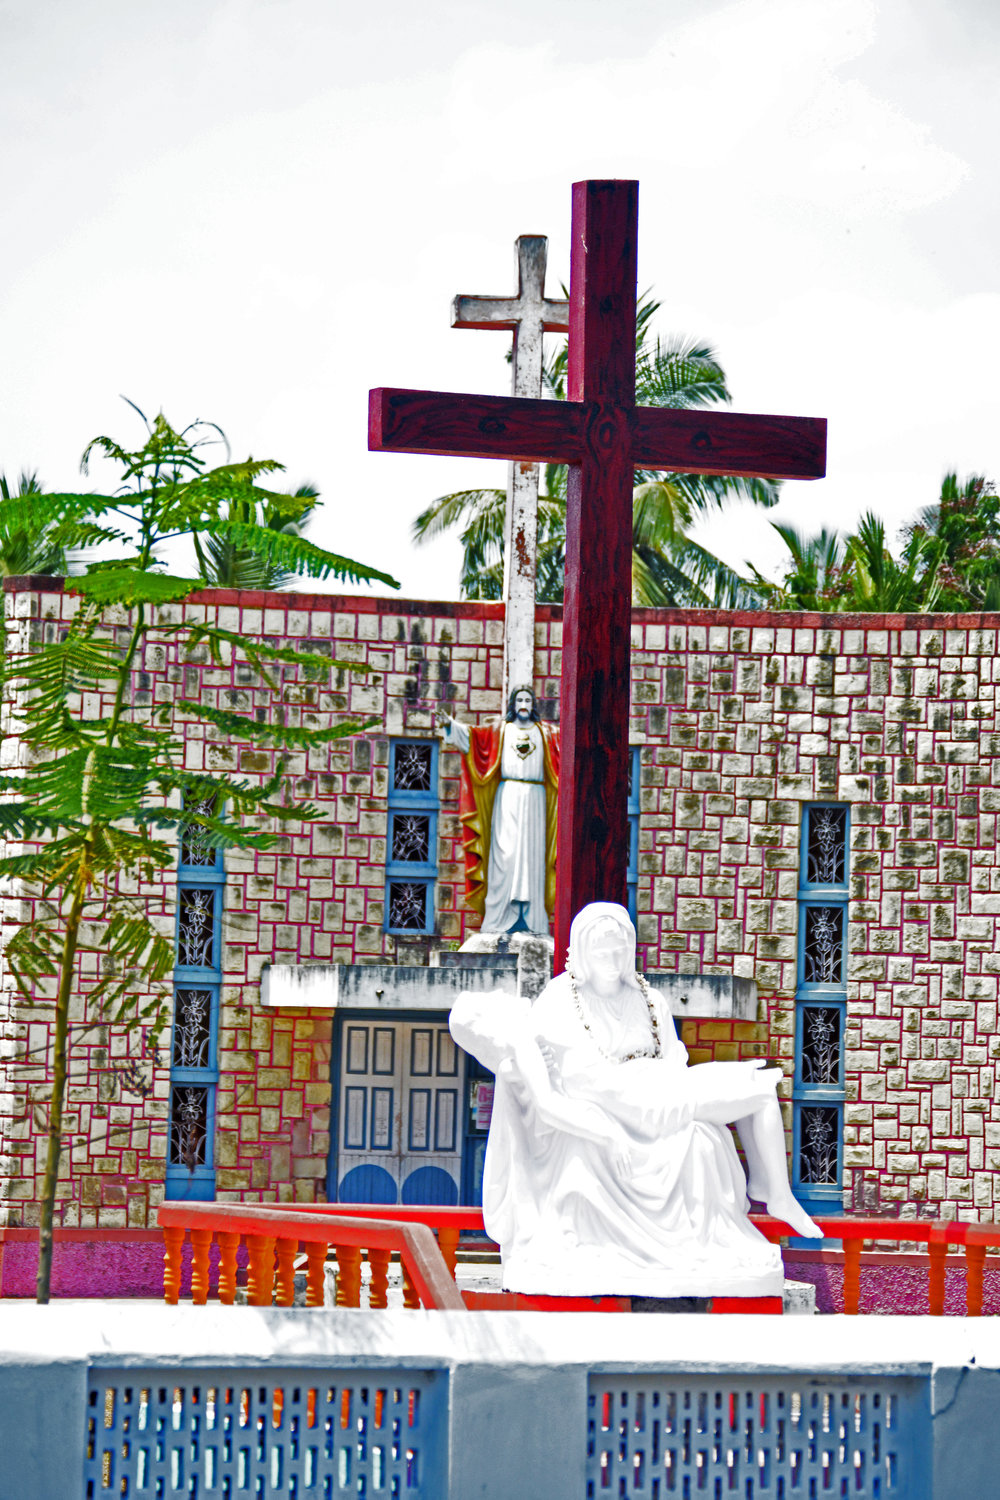 This statue is seen from the roadside outside of this church building in southern India.